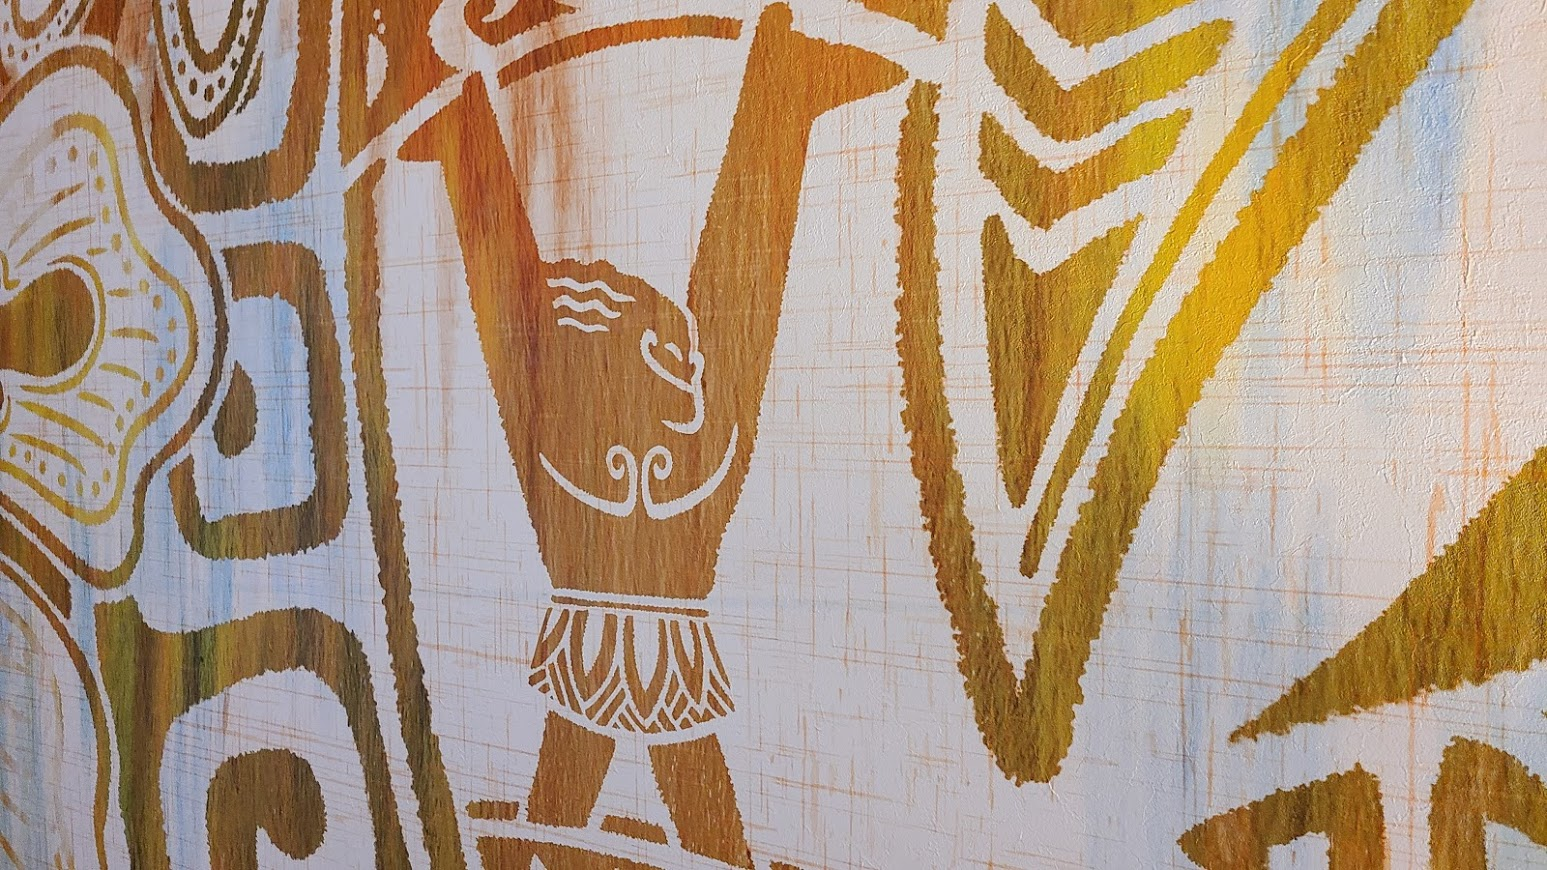 Take a tour of the new Moana Themed Rooms at Disney's Polynesian Resort 9